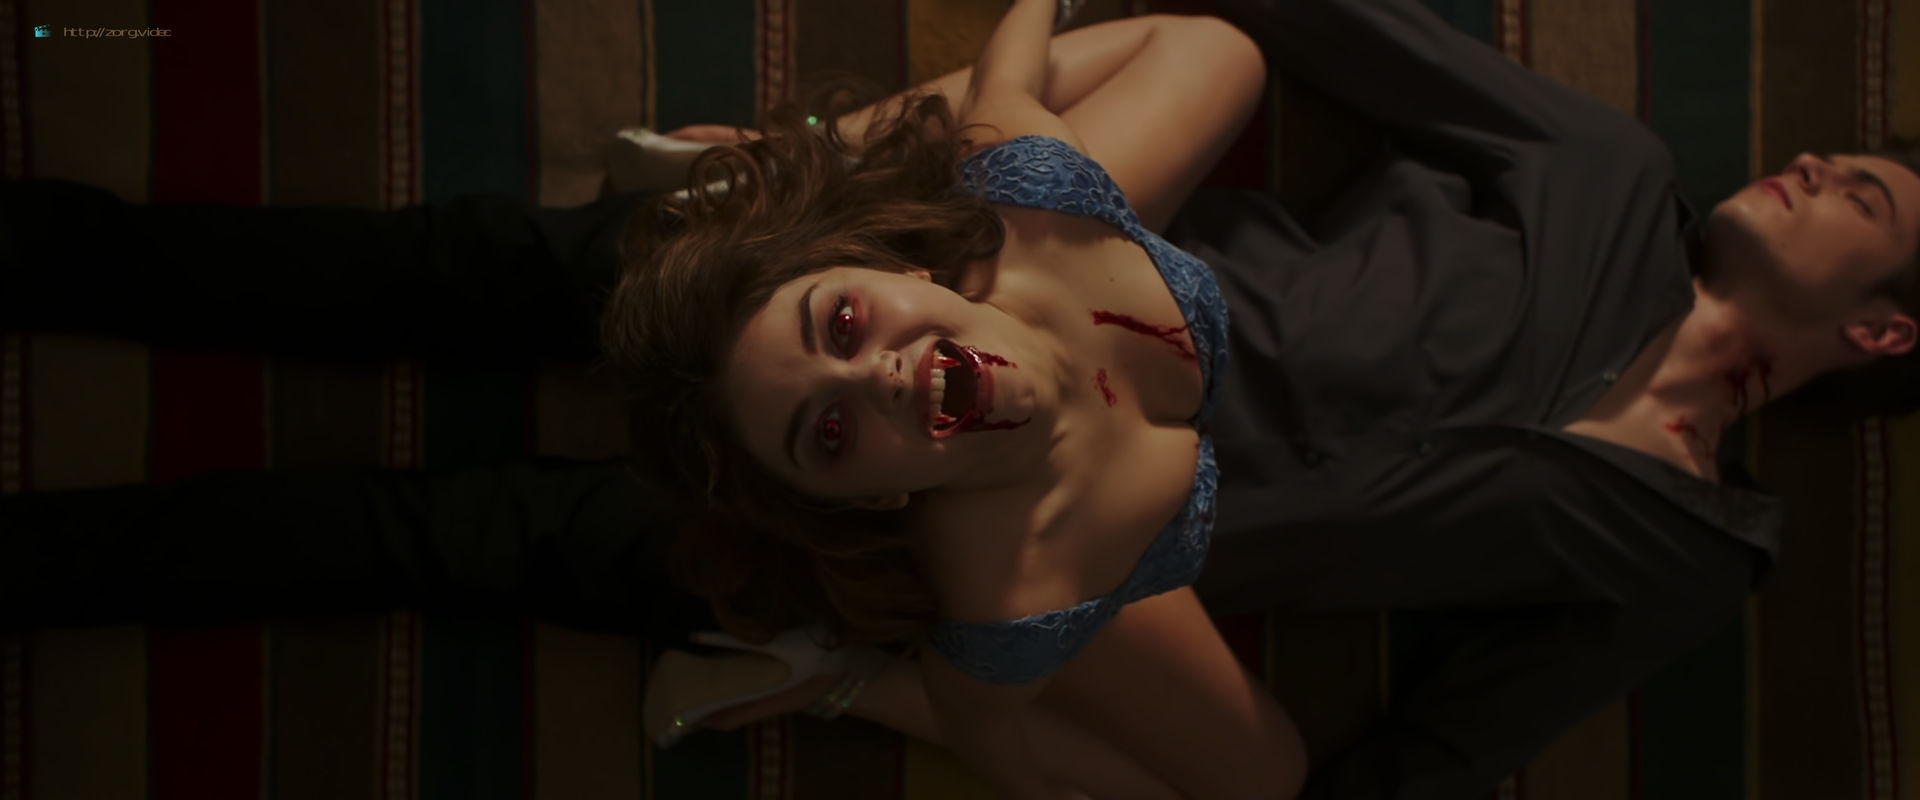 Zoey Deutch hot and sexy in black lingerie and some mild sex in - Vampire Academy (2014) HD 1080p BluRay (2)